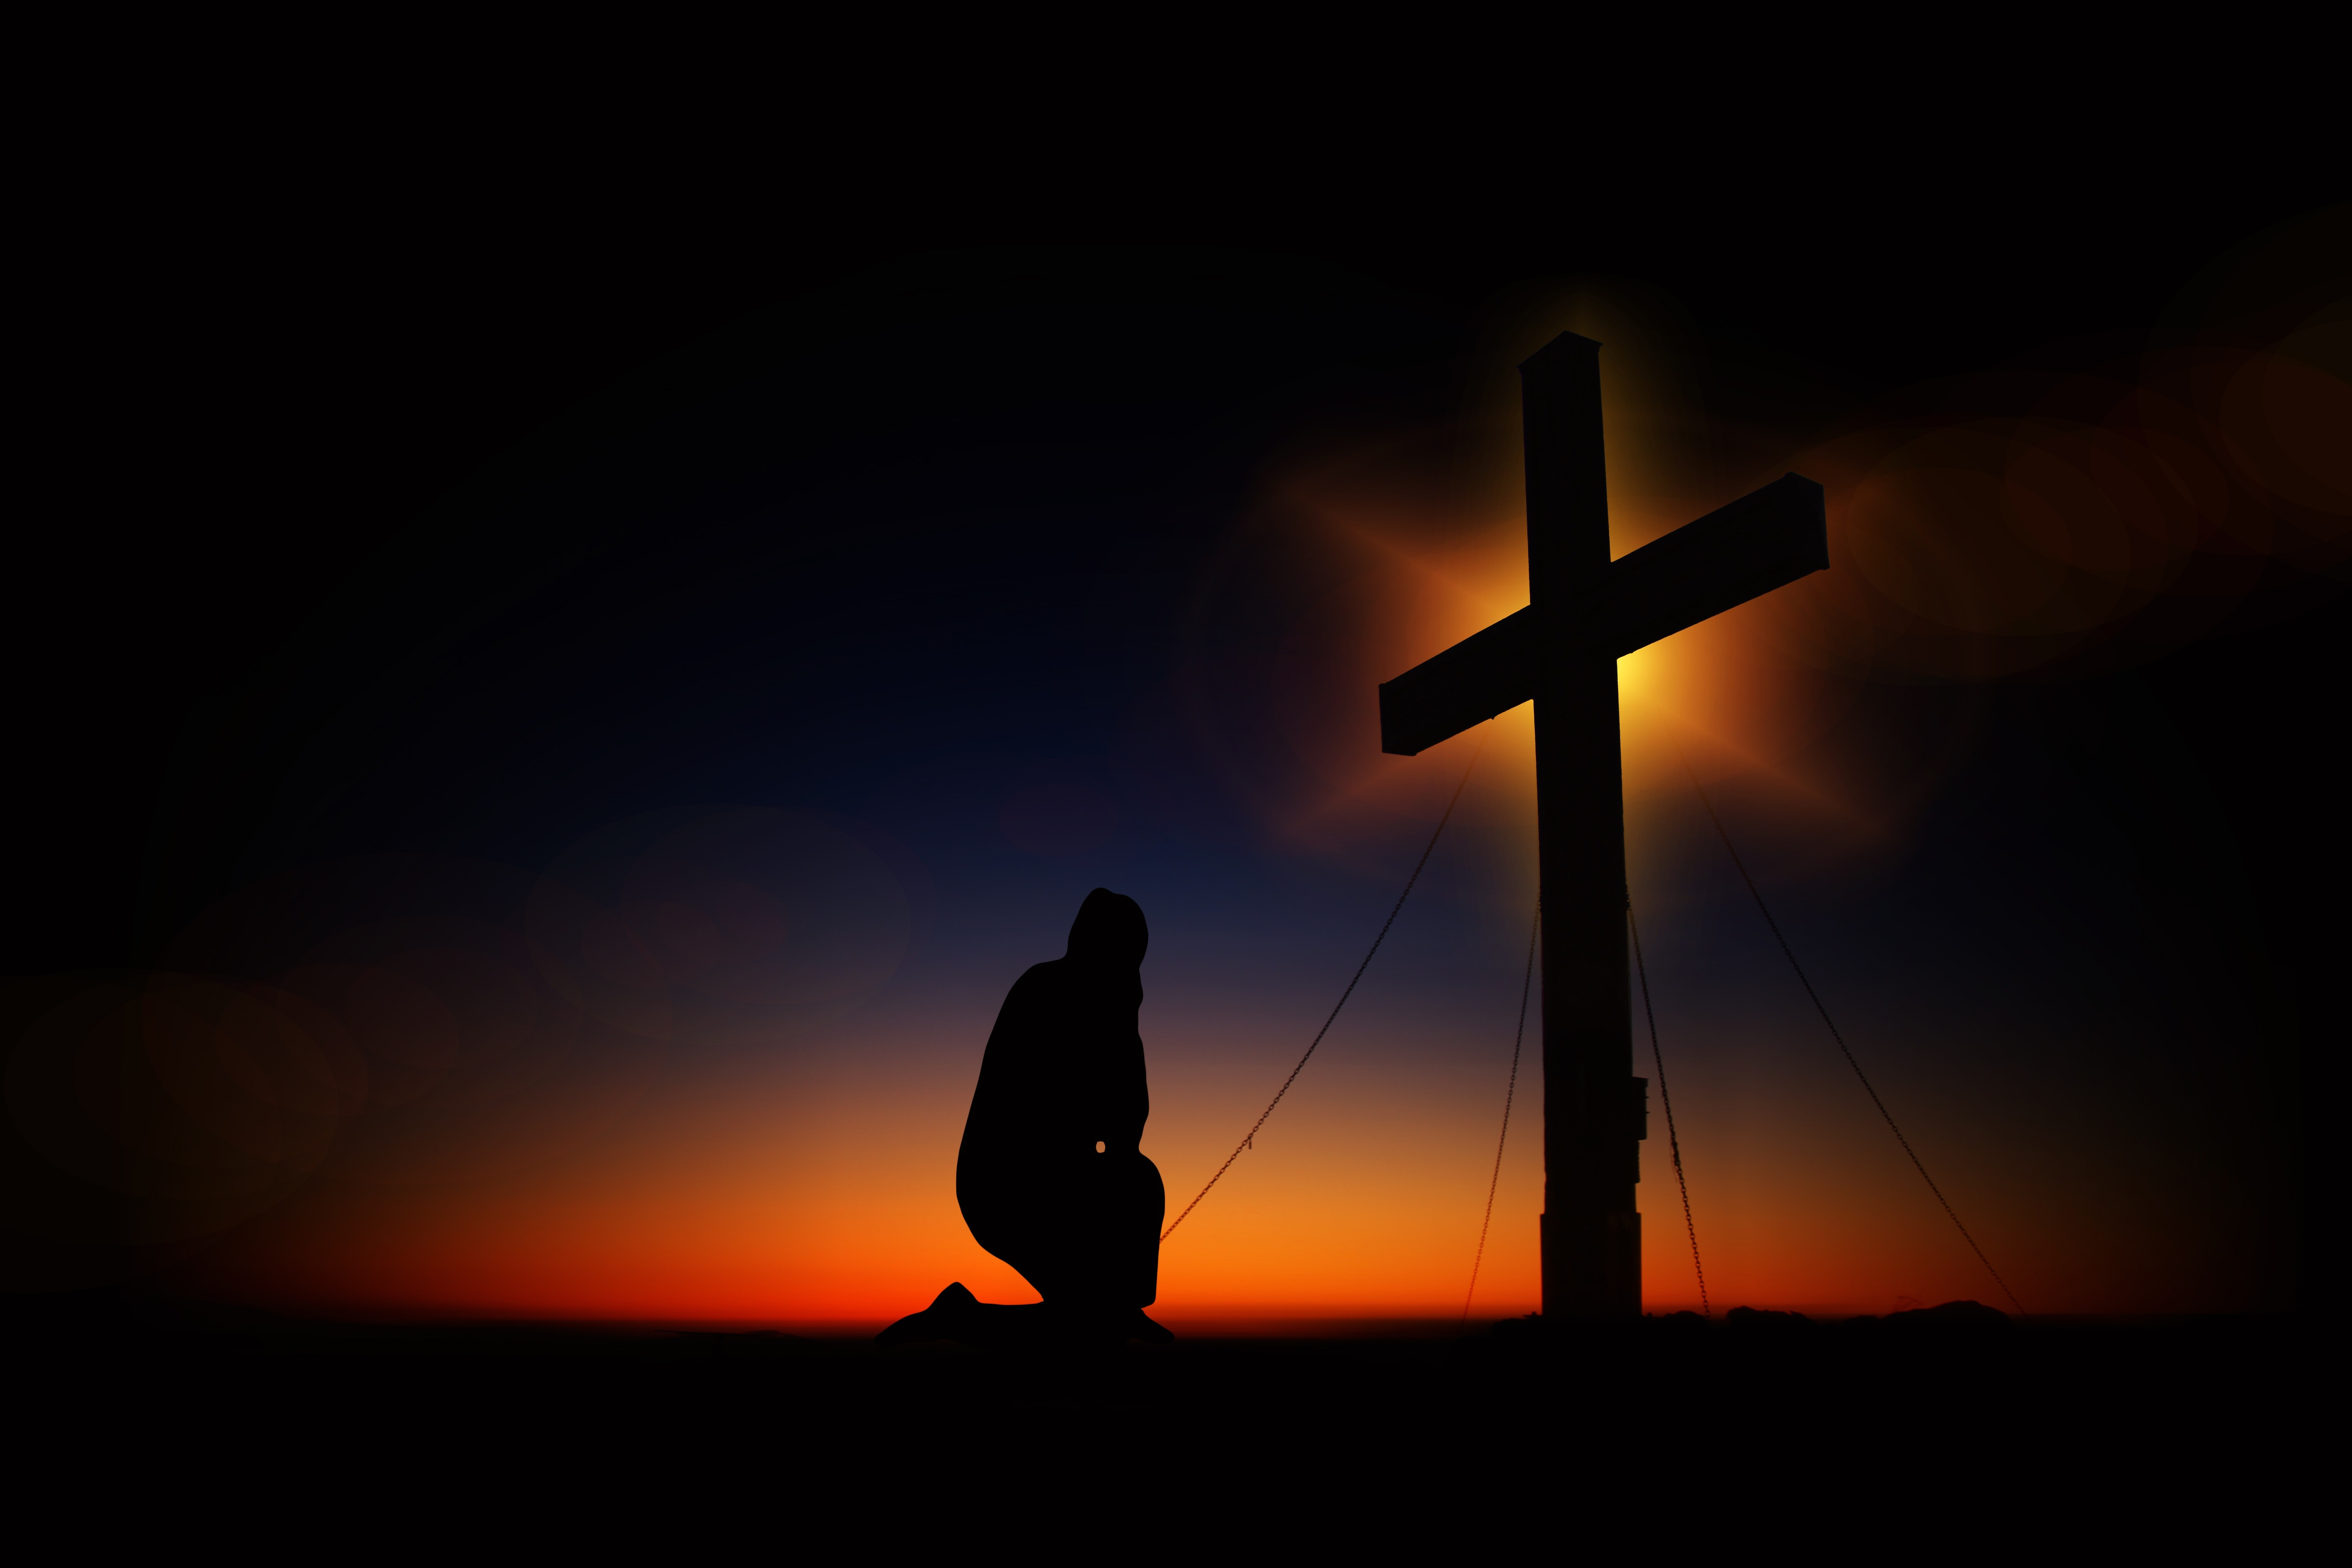 Man Kneeling in Front of Cross, Shadow, Ropes, Pray, Silhouette, HQ Photo